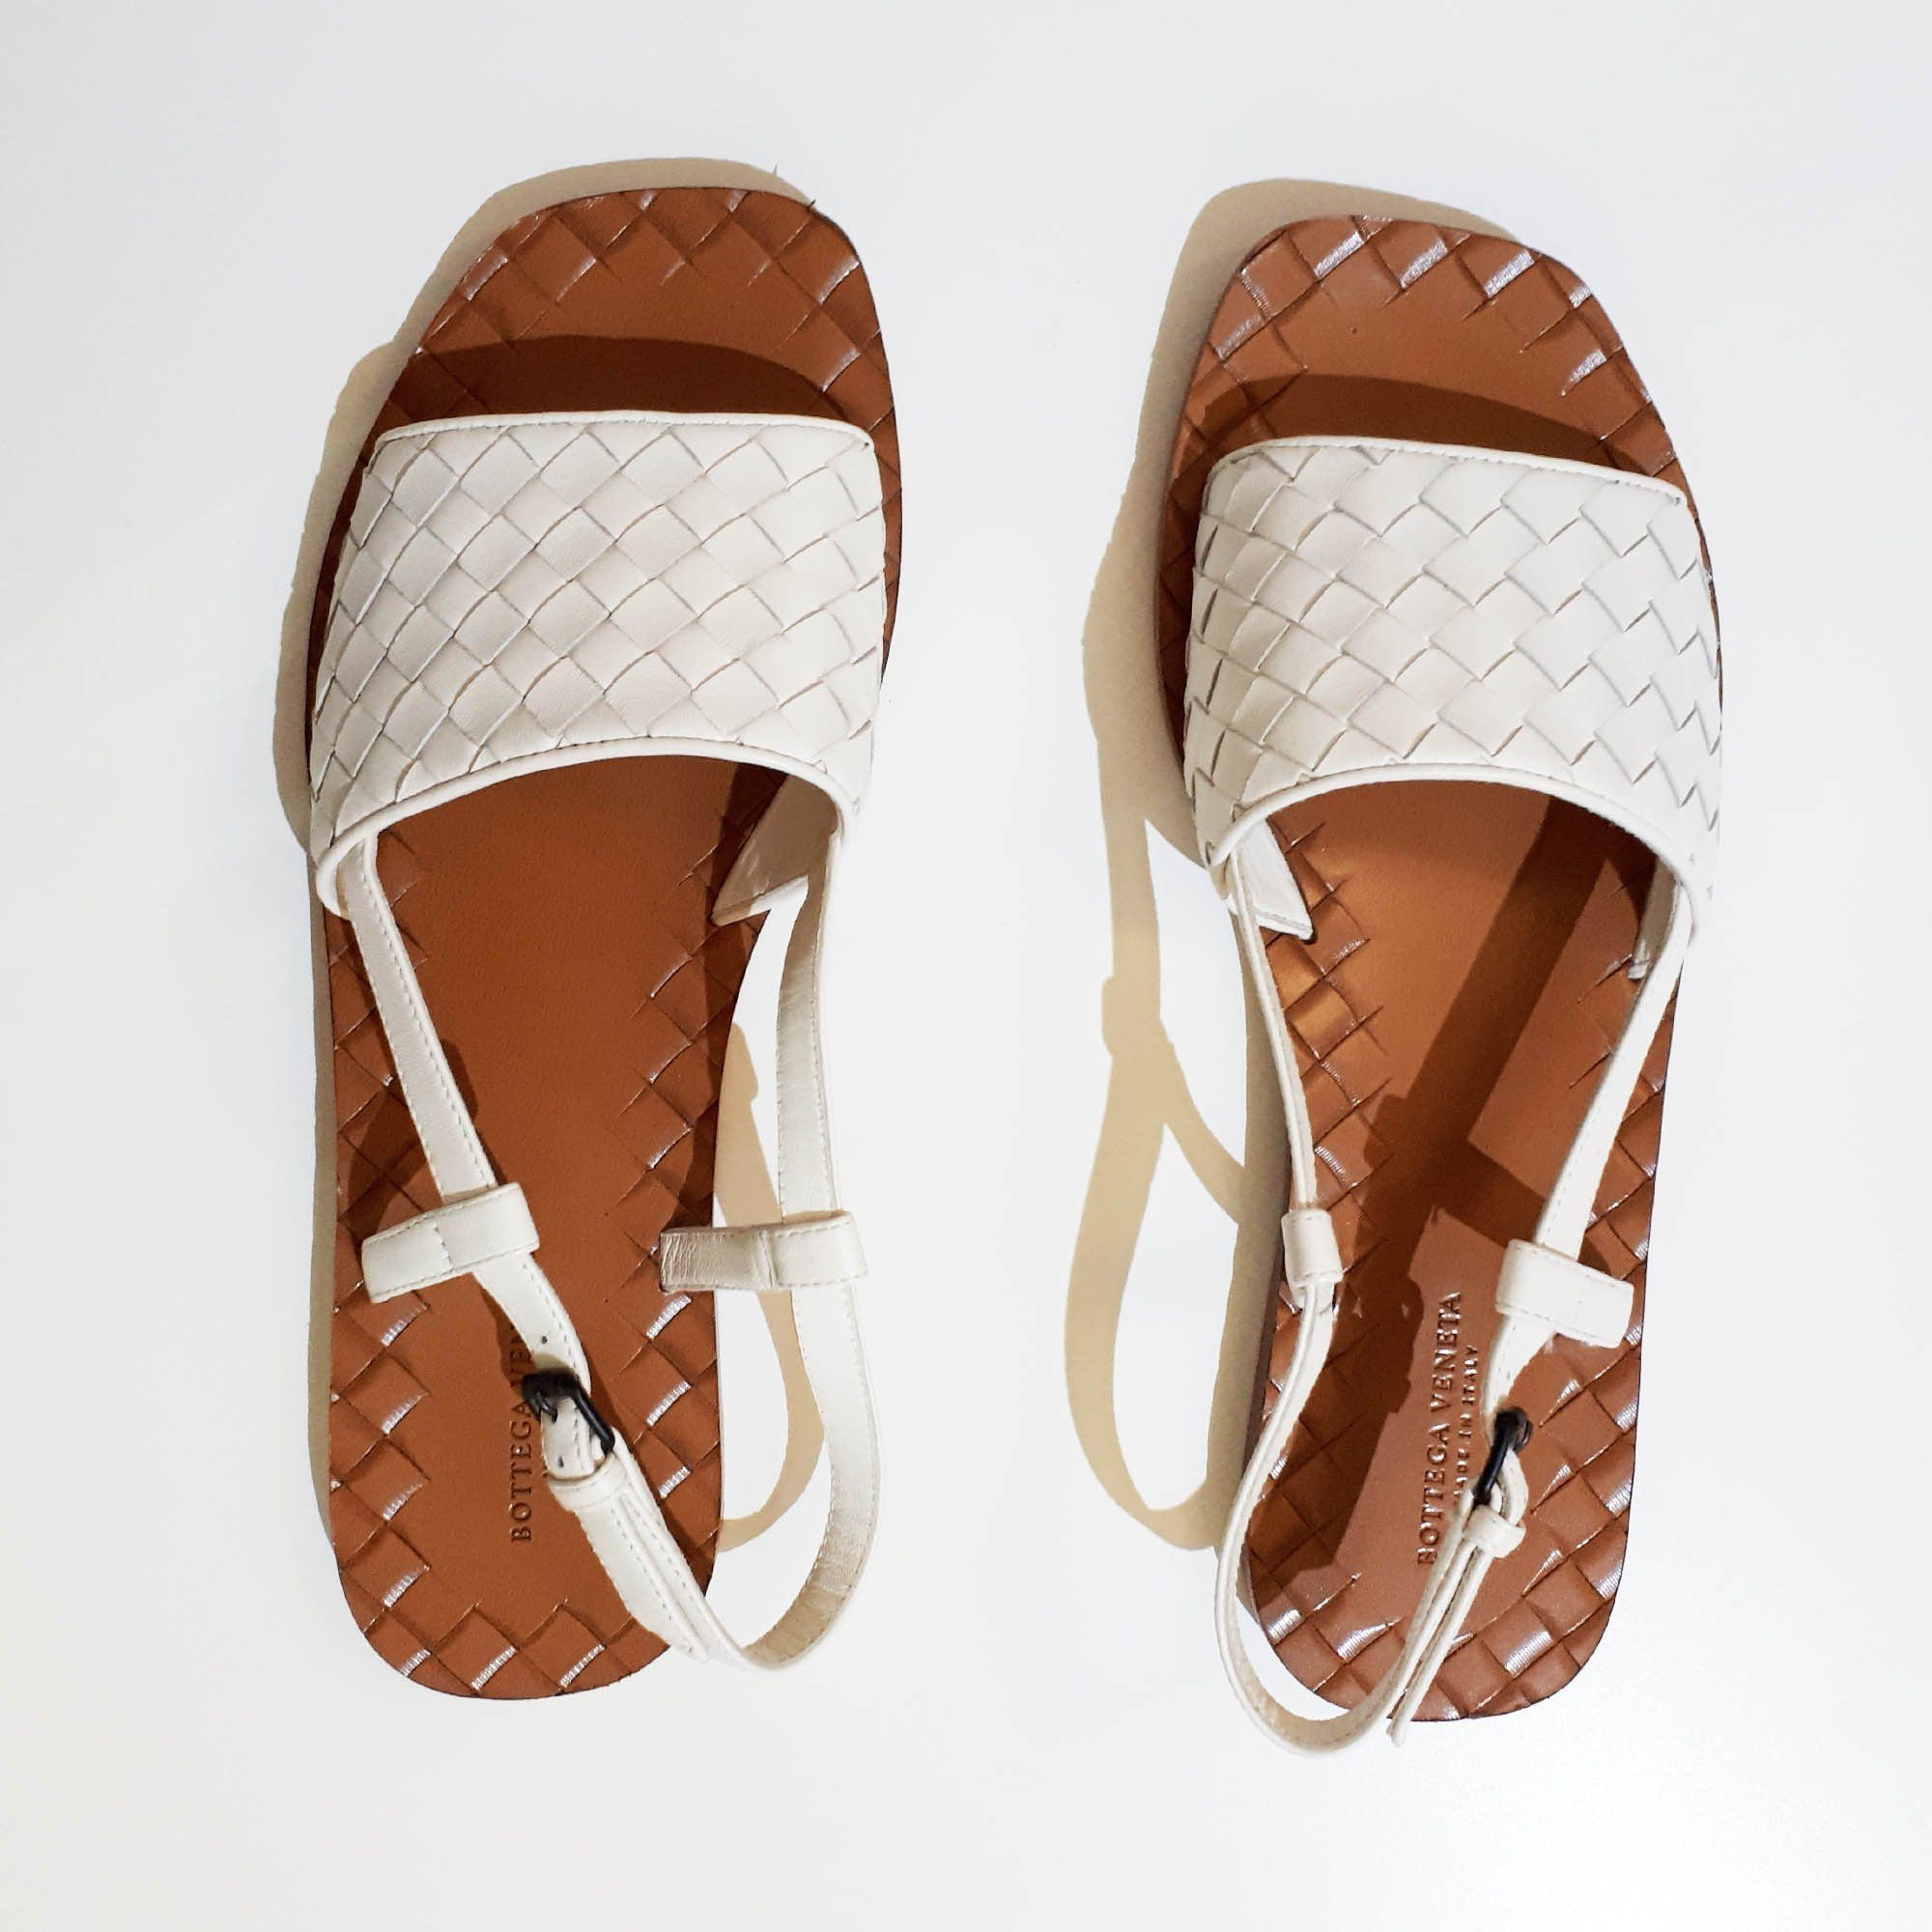 Bottega Veneta Intrecciato Leather Sandals